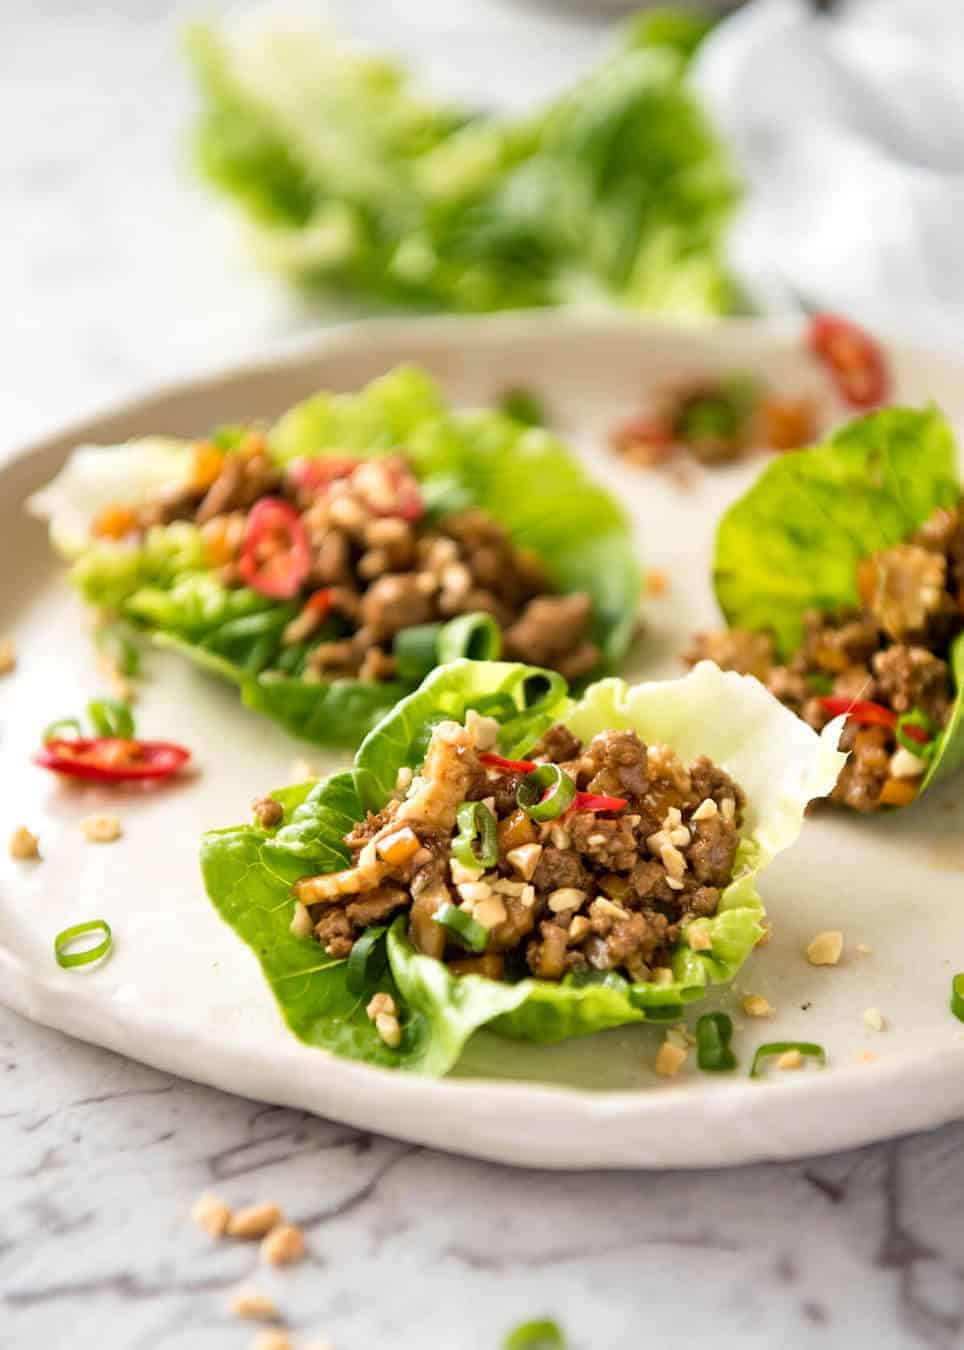 San Choy Bow (Chinese Lettuce Cups) - A great San Choy Bow starts with a great sauce. Get that right and you can make this with almost anything! recipetineats.com